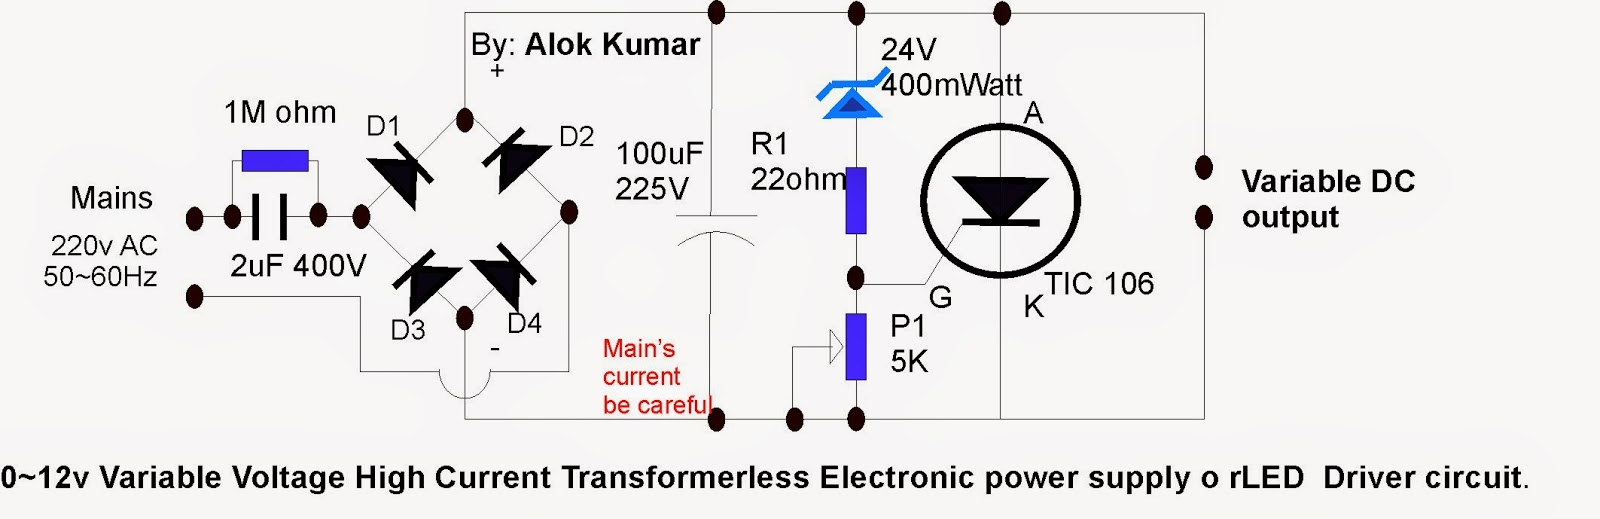 electronic circuits transformerless power supply led drivers circuit diagram circuit diagram battery charger using scr  [ 1600 x 519 Pixel ]